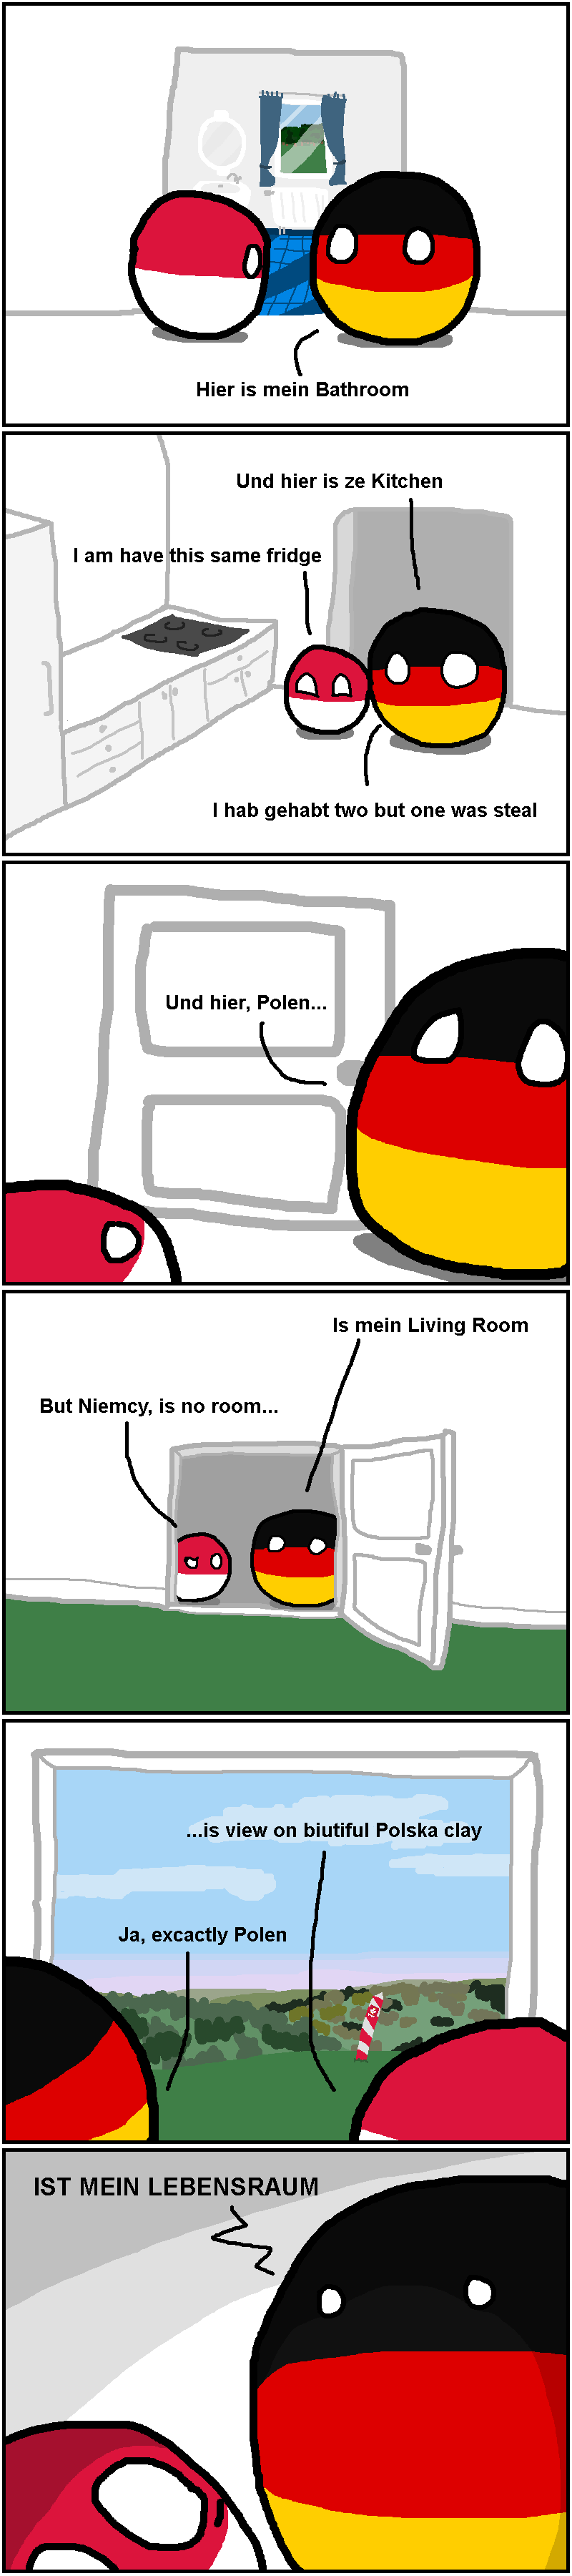 Germany's house